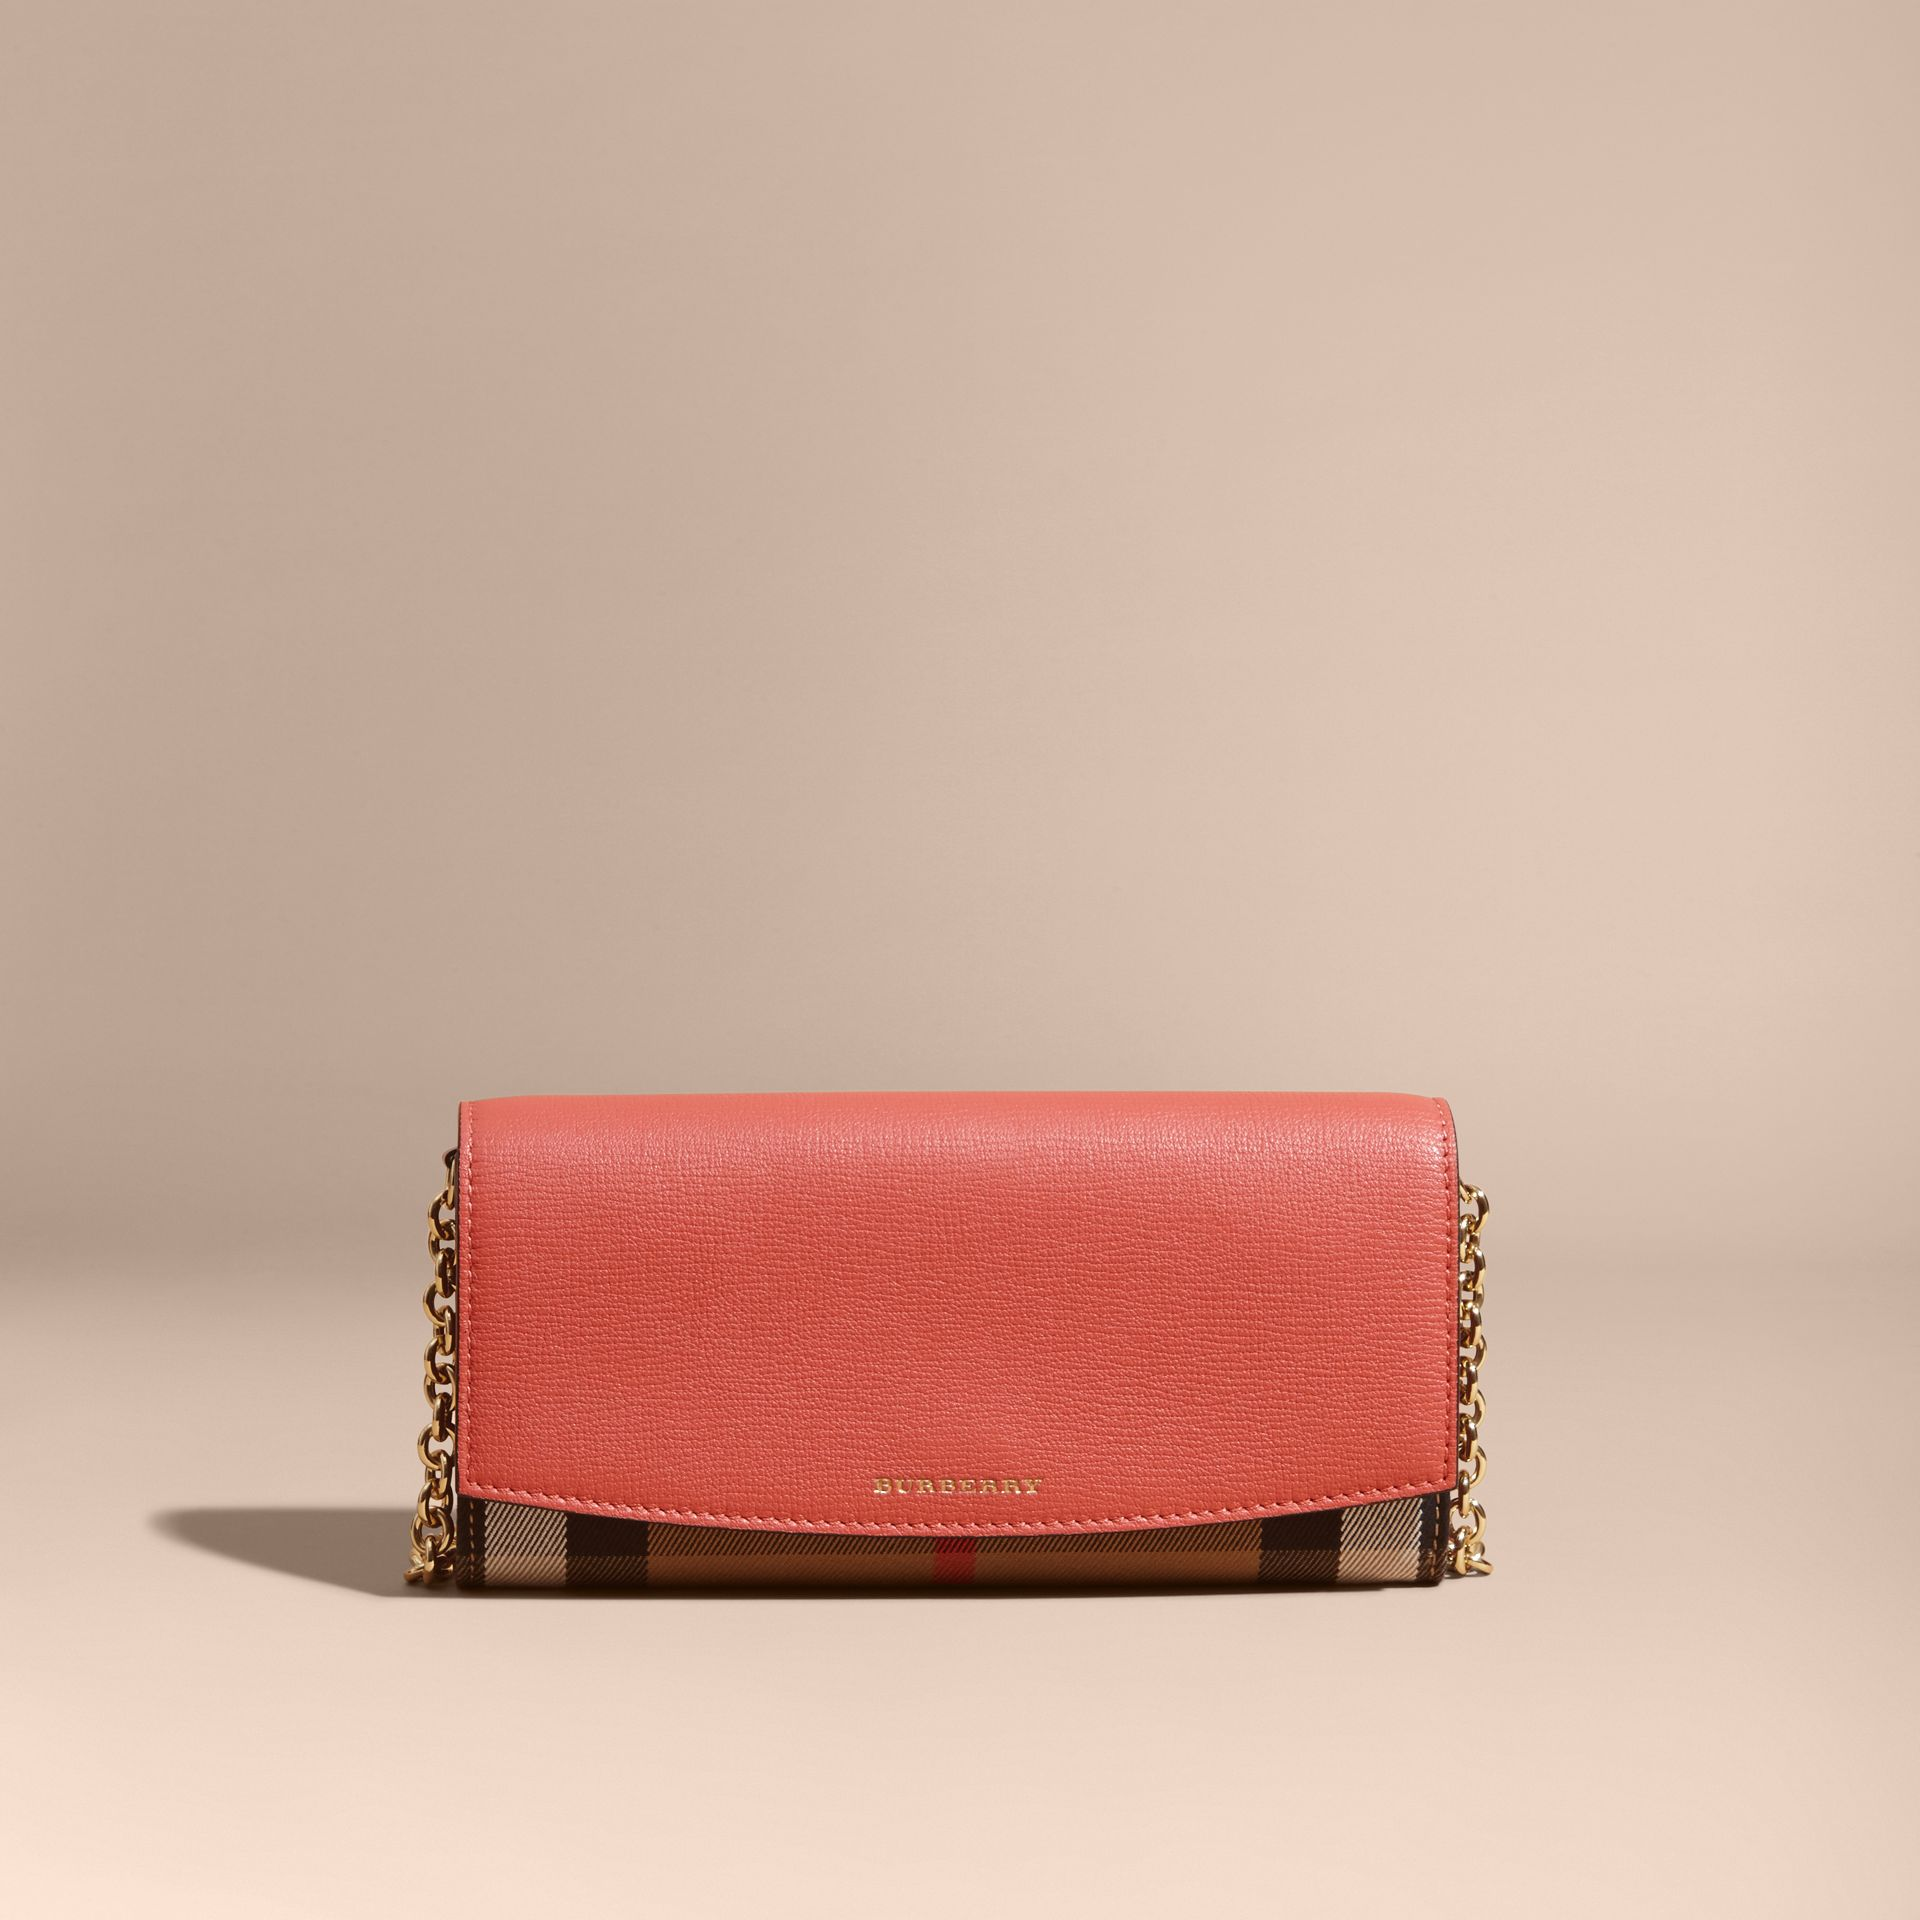 House Check and Leather Wallet with Chain in Cinnamon Red - Women | Burberry - gallery image 8